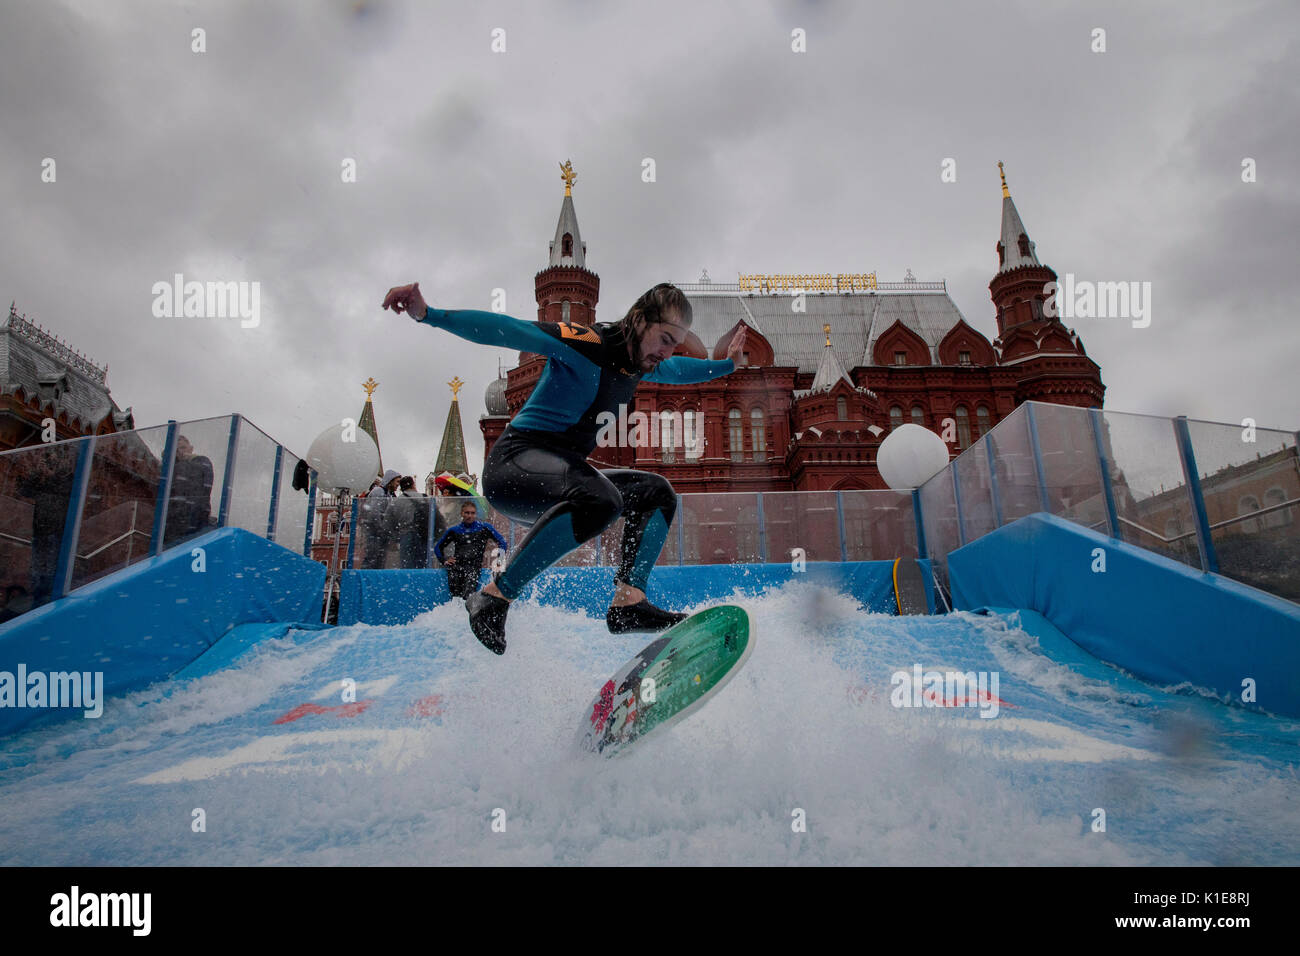 Moscow, Russia. 25th of August, 2017. A man jump on flowboard at front of the Red square in the center of Moscow, Stock Photo